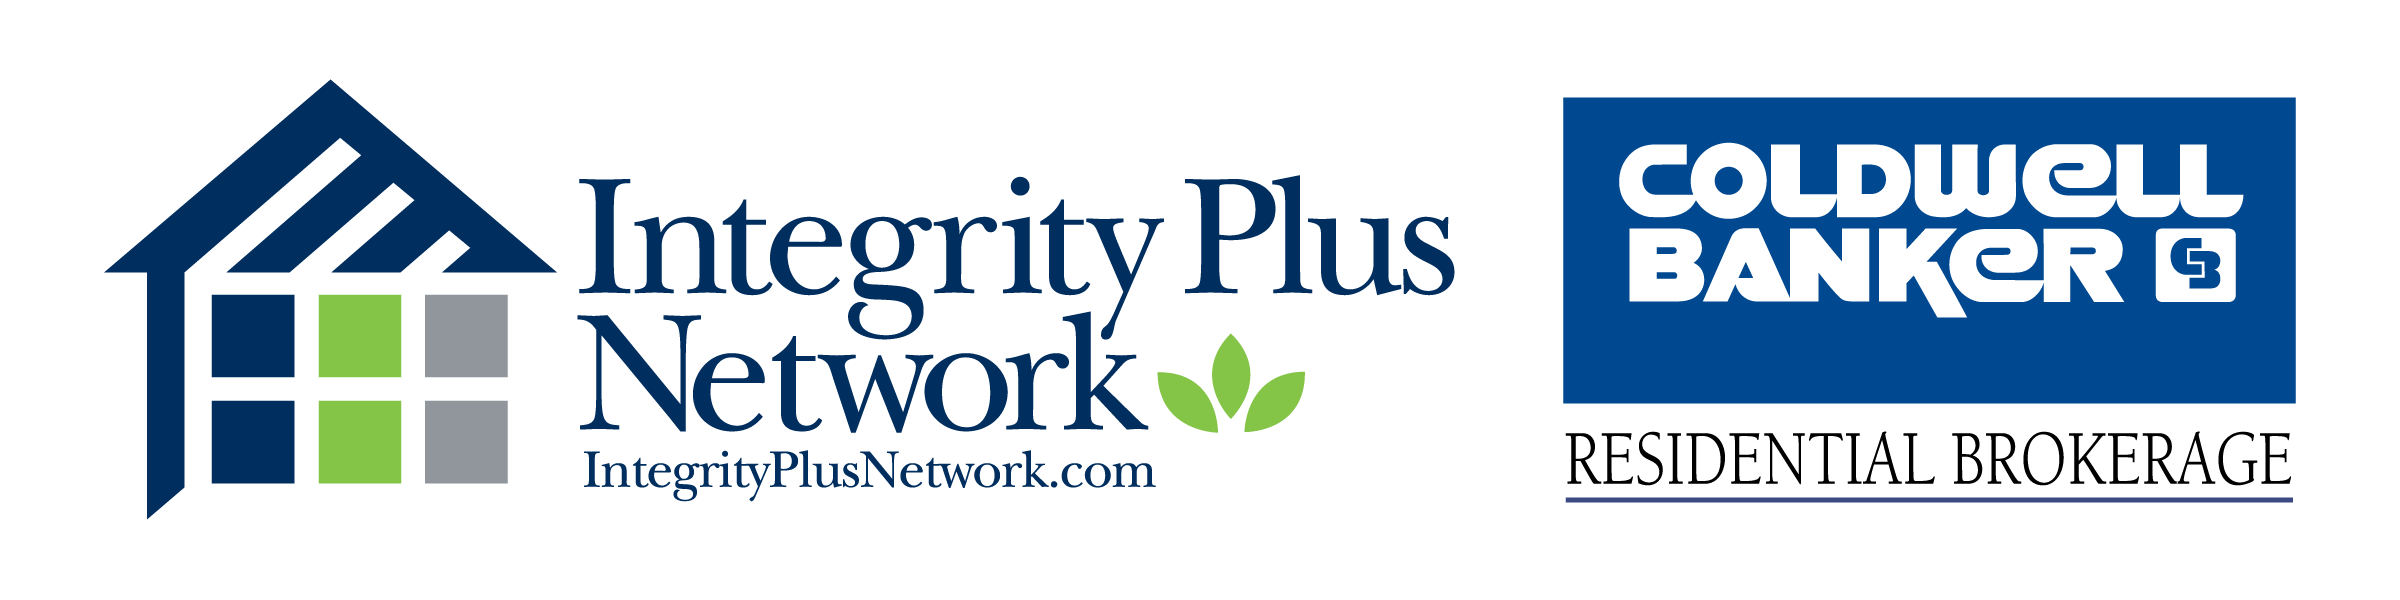 Integrity Plus Network